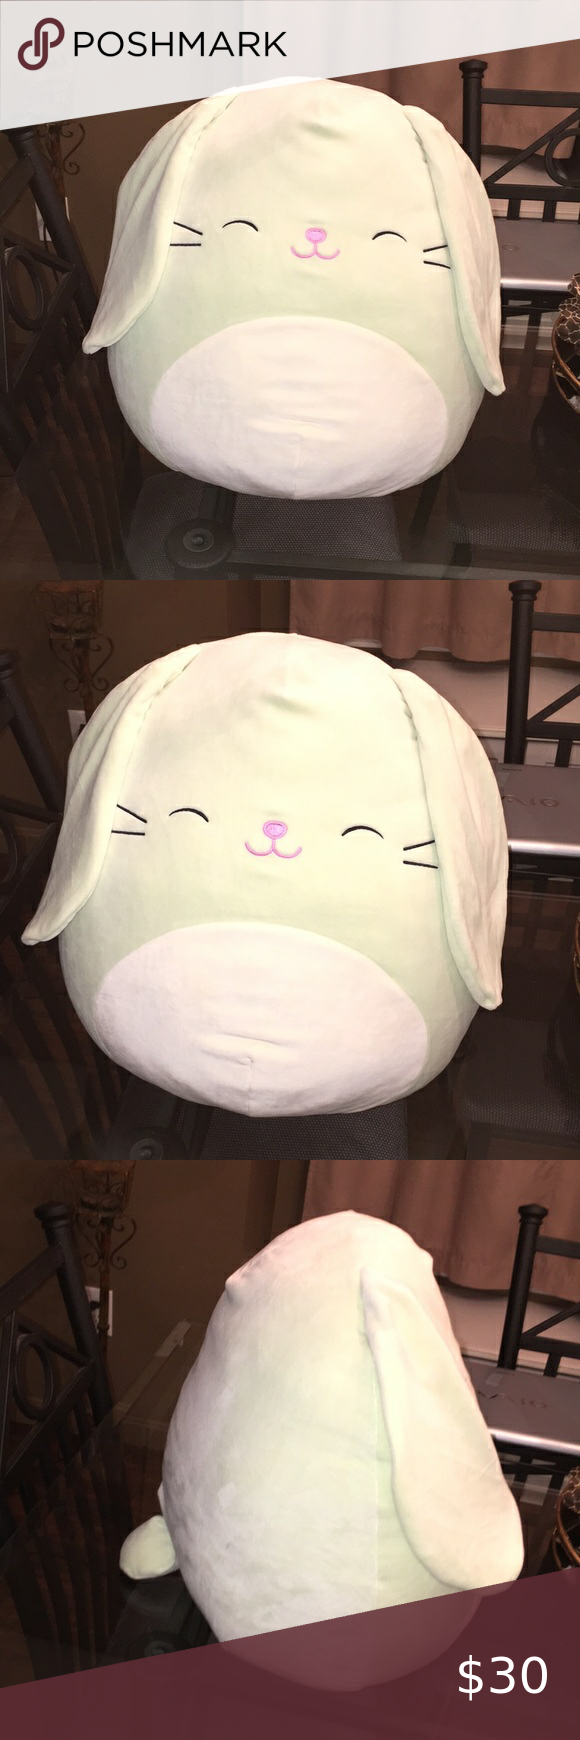 Squishmallow Isabella Mint Bunny Large Size Plush In 2020 Plush Large Size Things To Sell